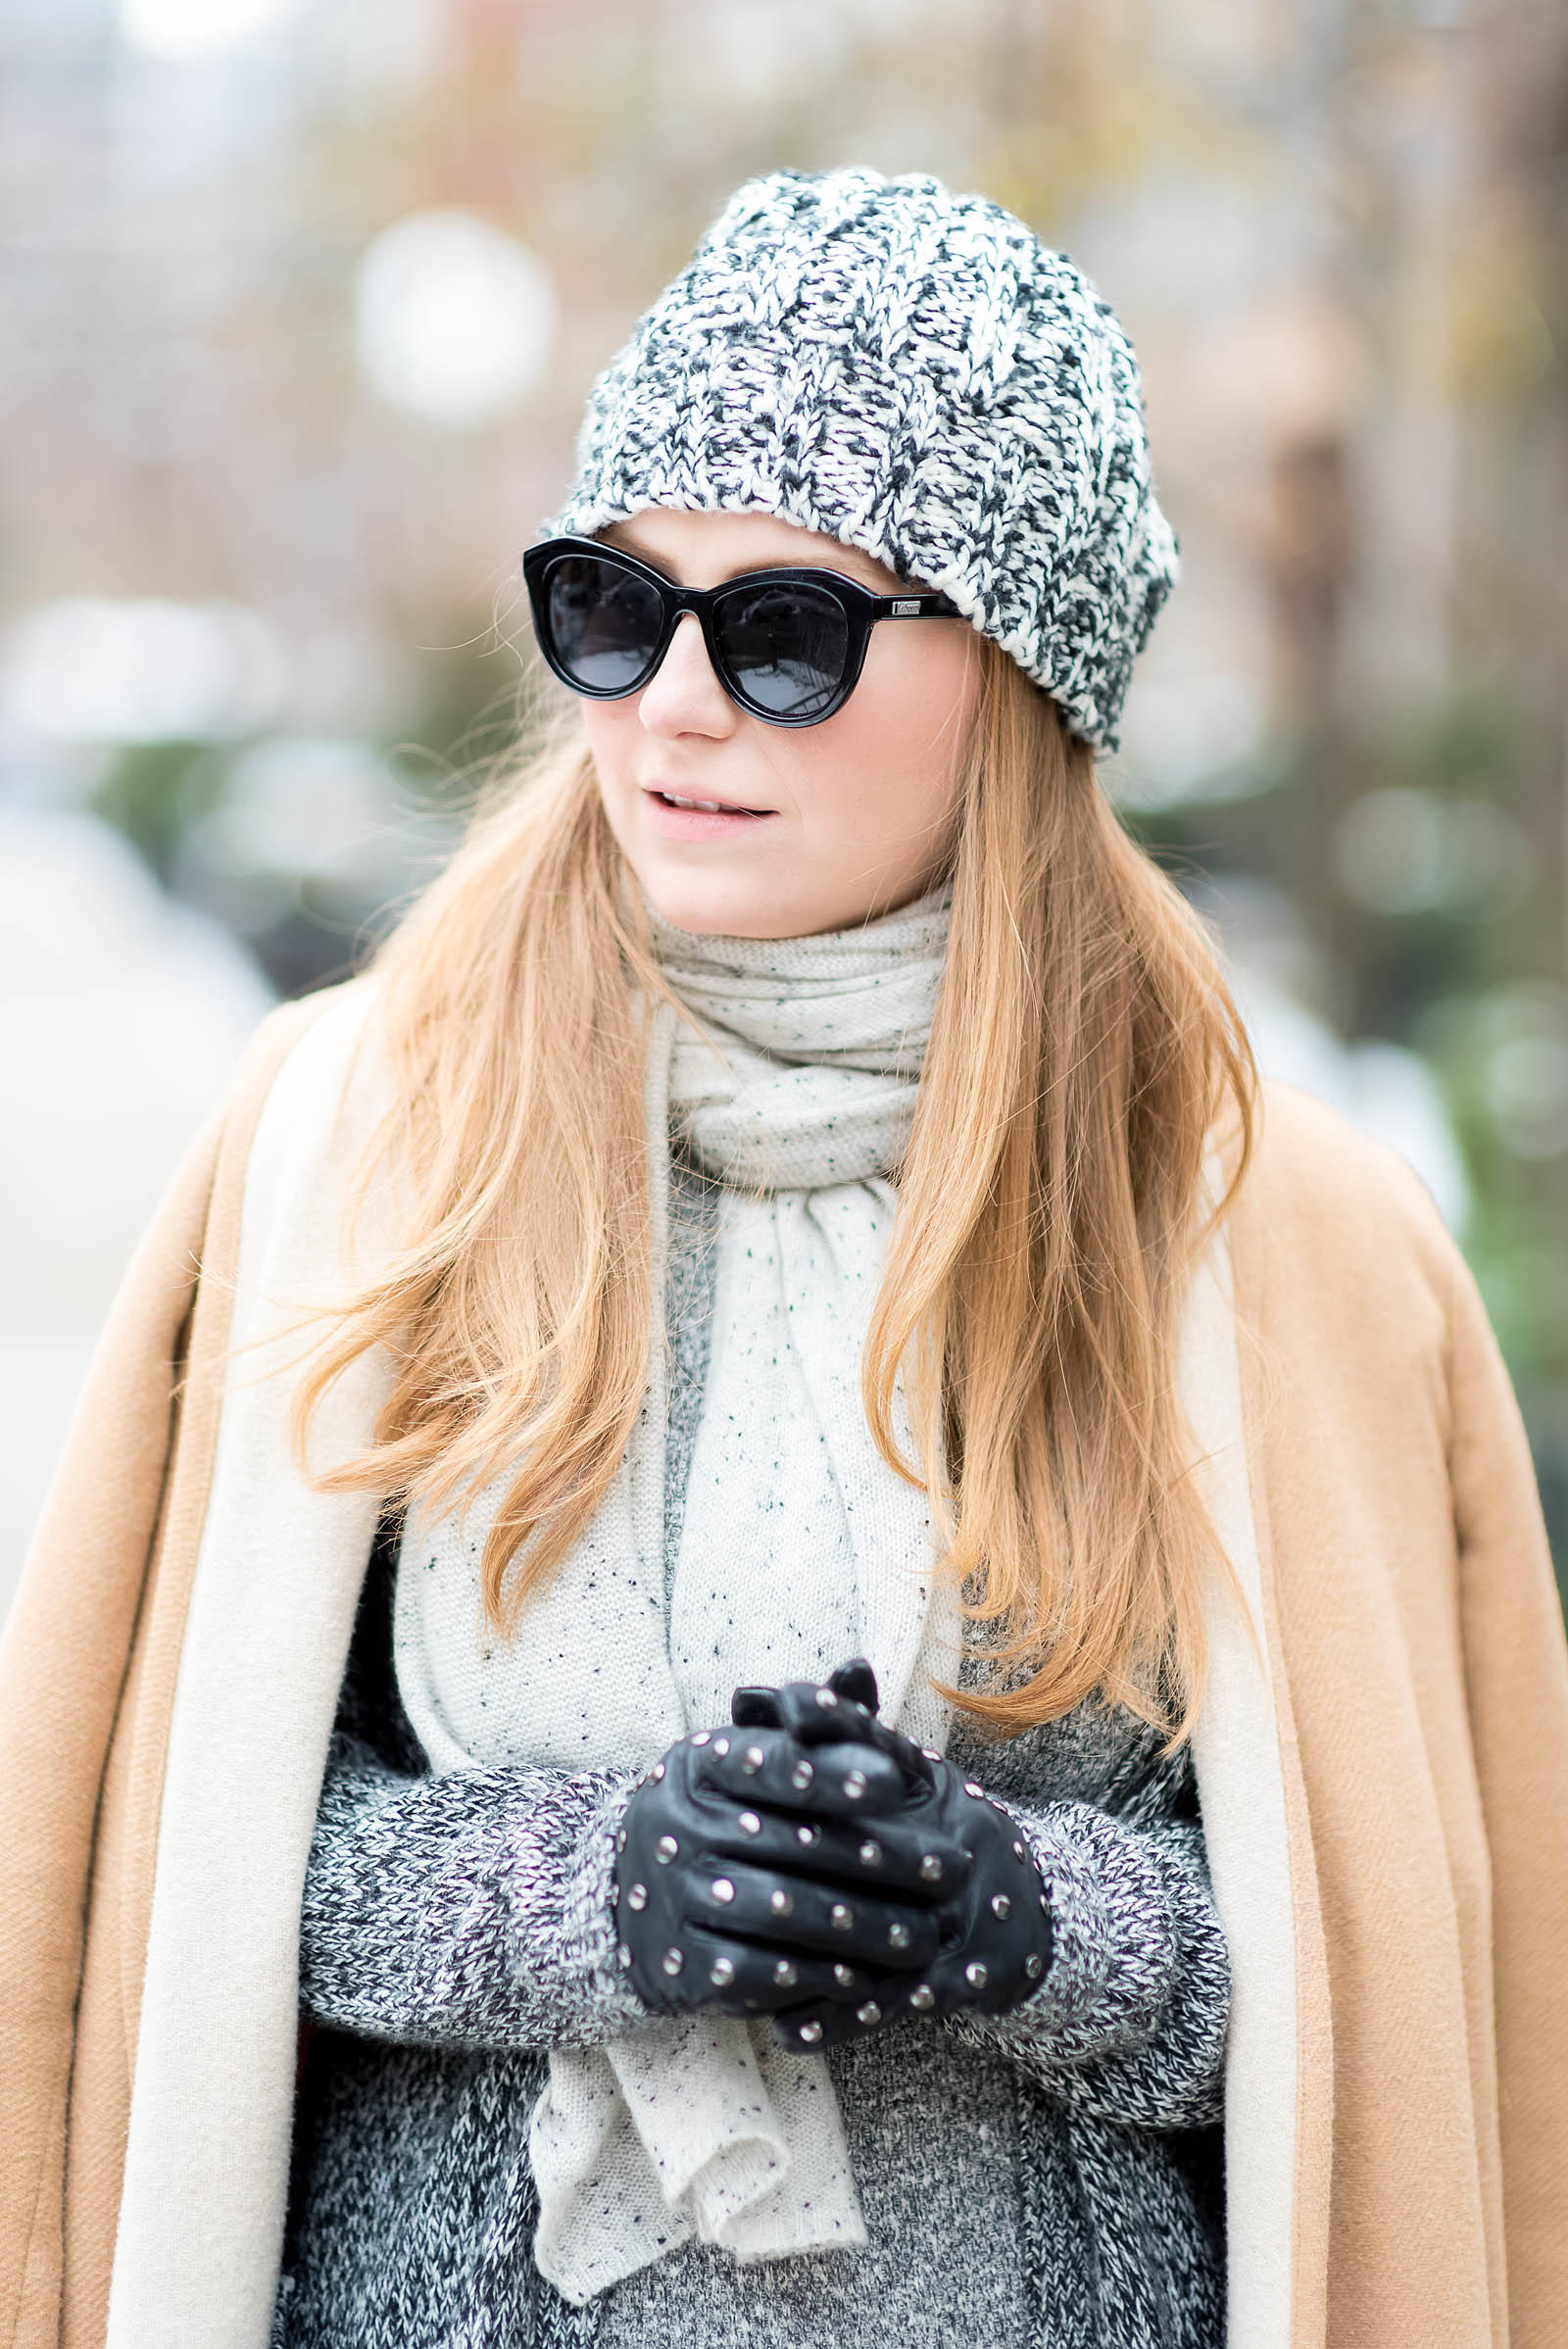 Marled Gray Knit Winter Outfit